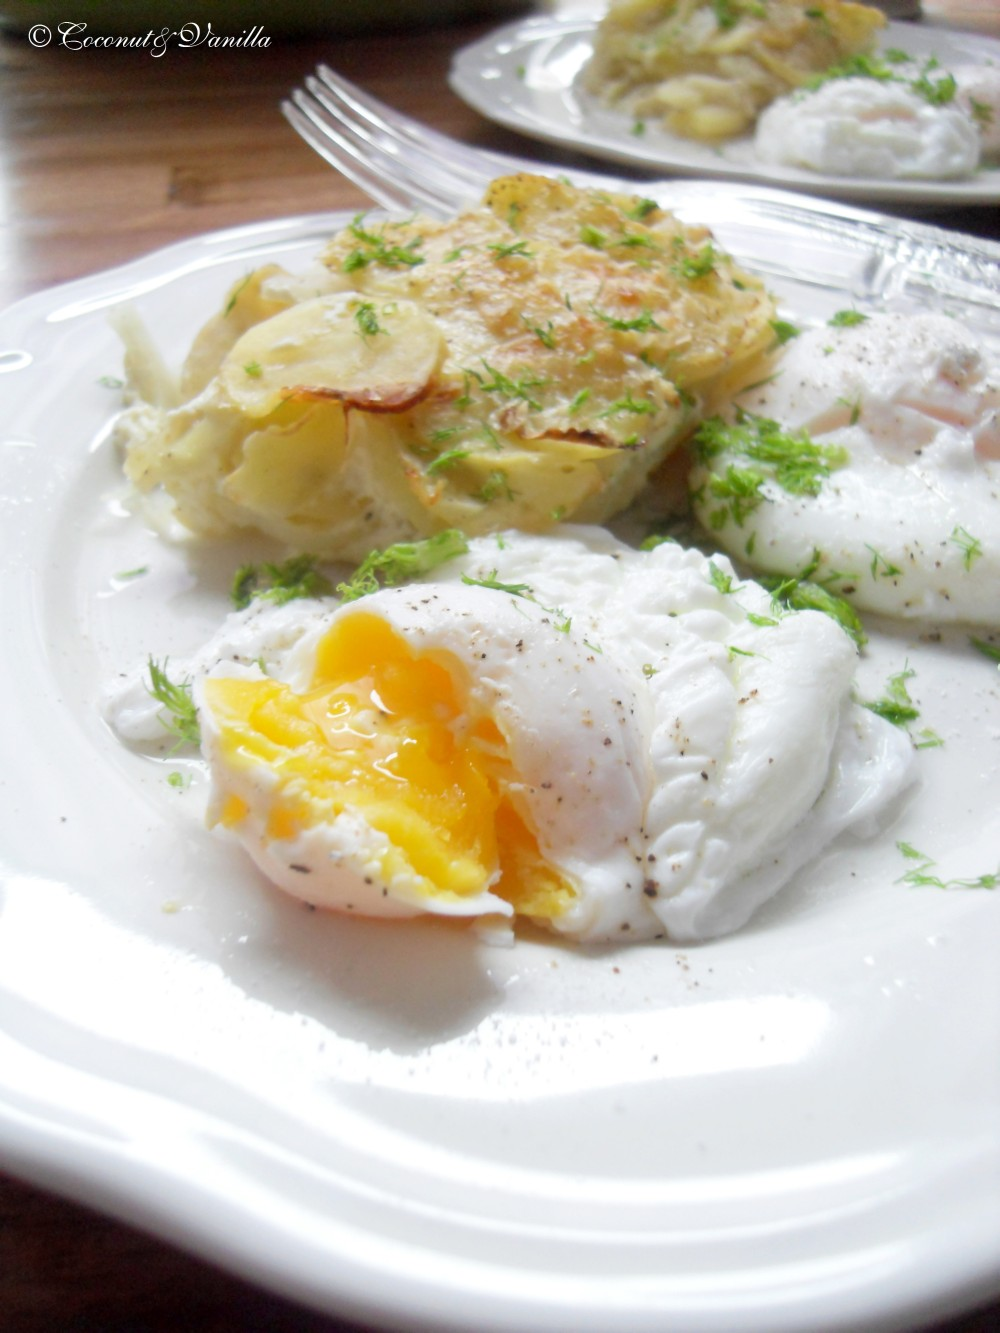 Potato-Fennel-Gratin with Poached Eggs